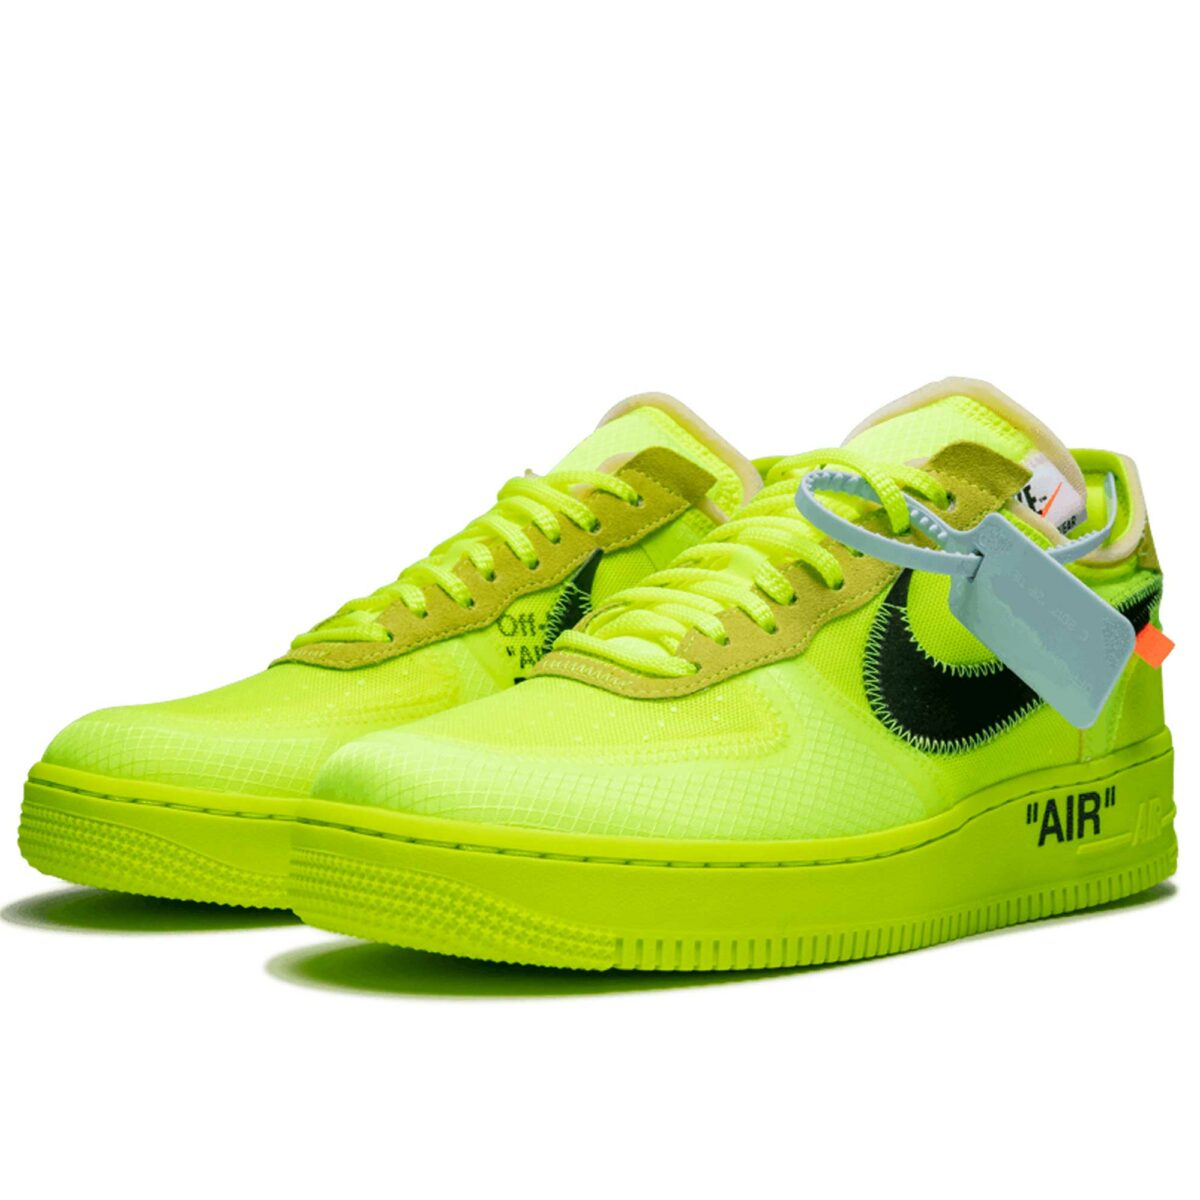 off white x nike air force 1 low volt AO4606_700 купить